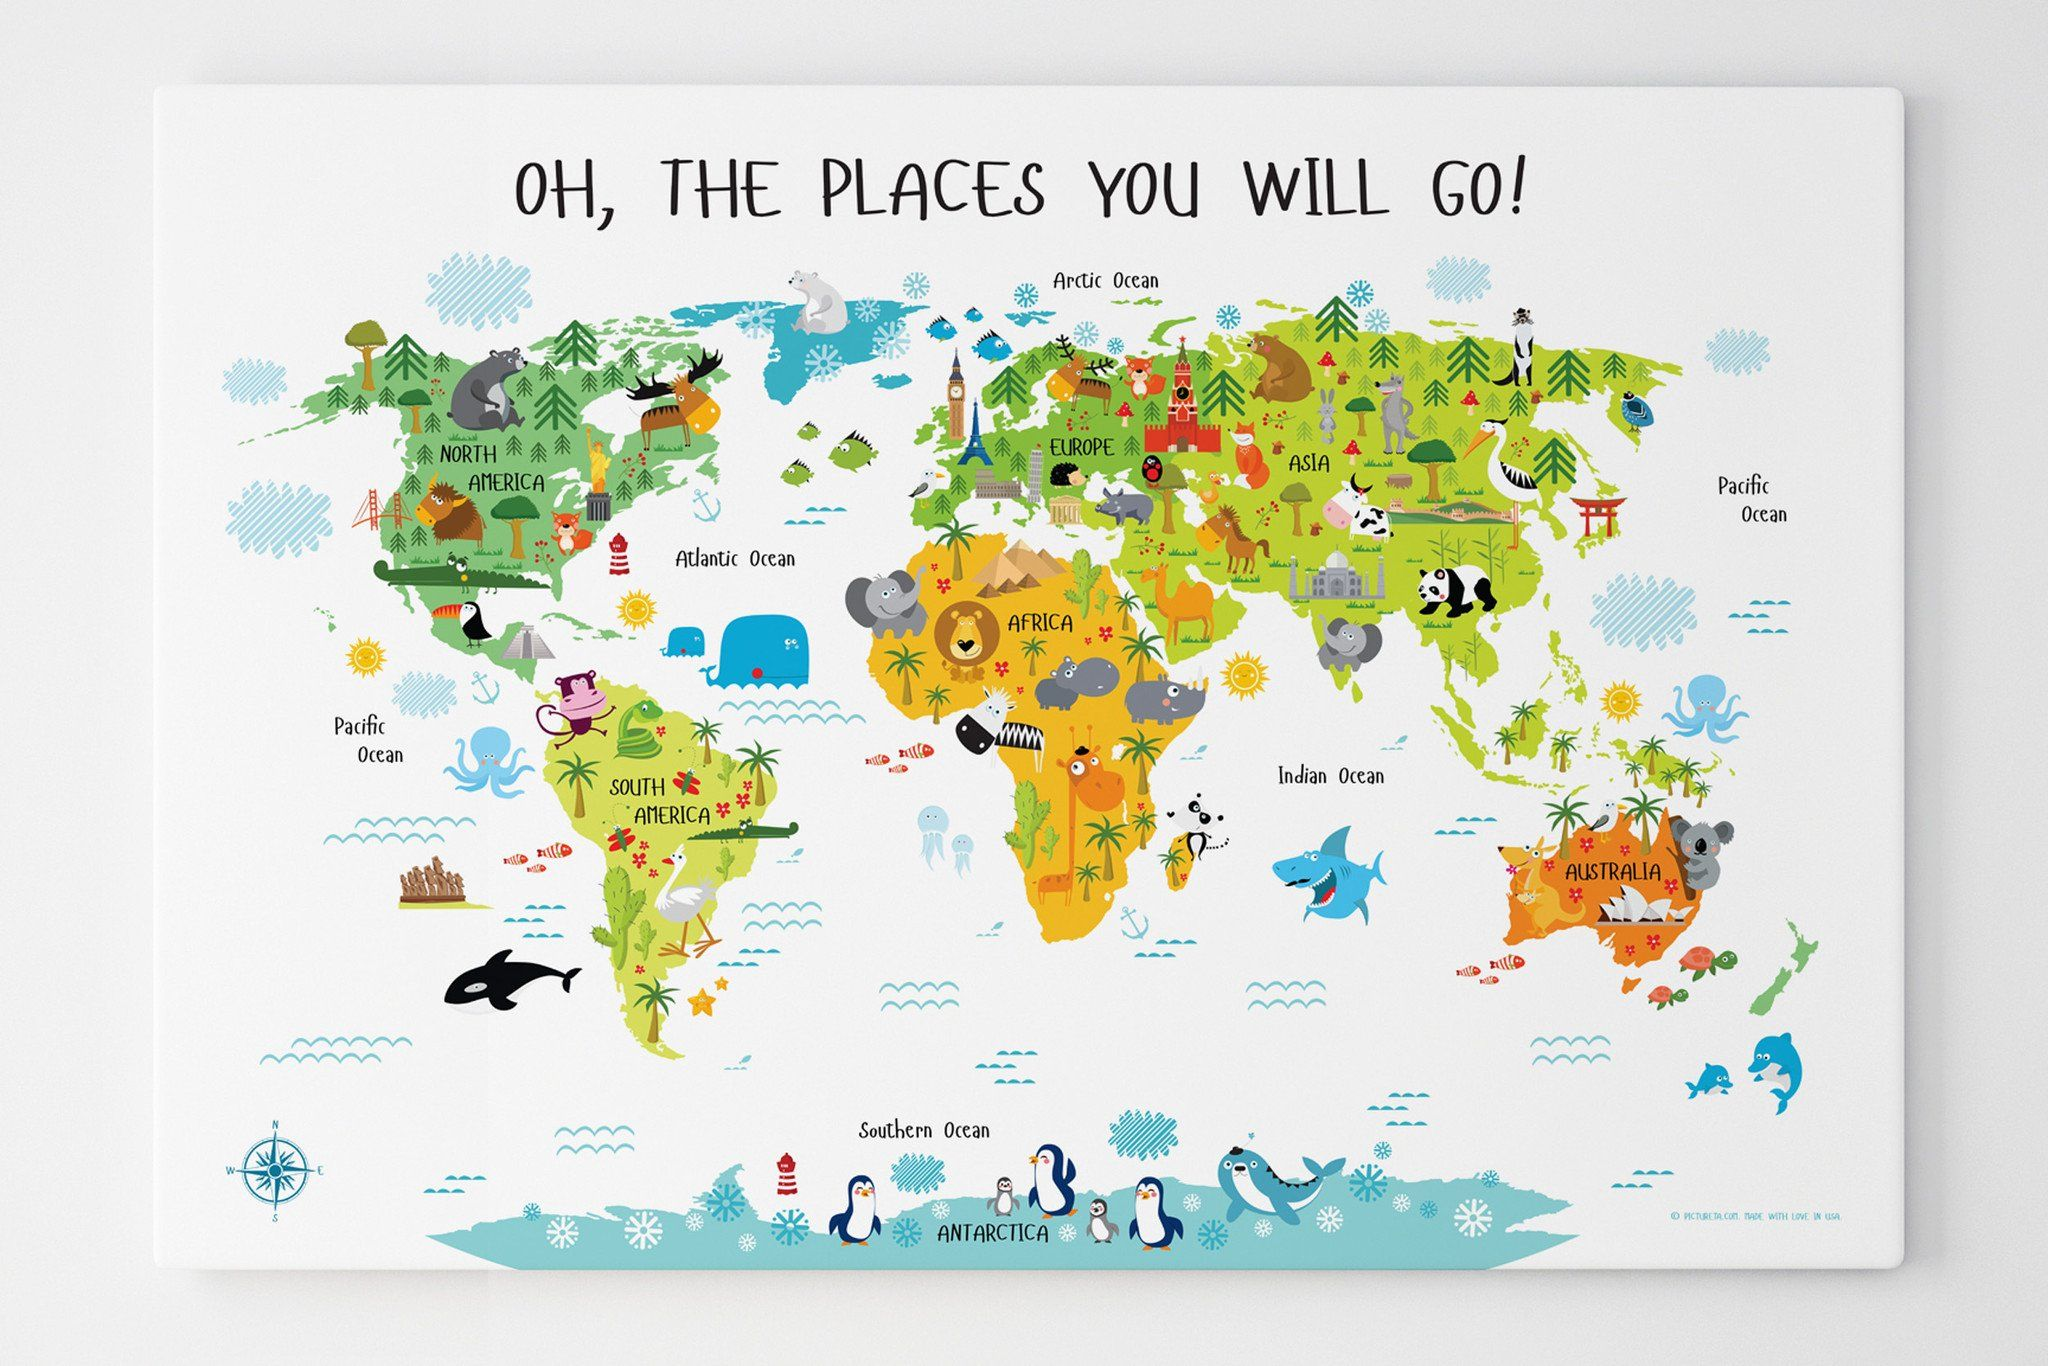 kids world map, Children's world map canvas, unique first ... on glider map, statue map, inverted map, glass map, go to the map, palace map, border map, magnetic map, large map, world map, trench map, floor map, desk map, plant map, plate map, atlas map, home map, green map, englewood map, step map,